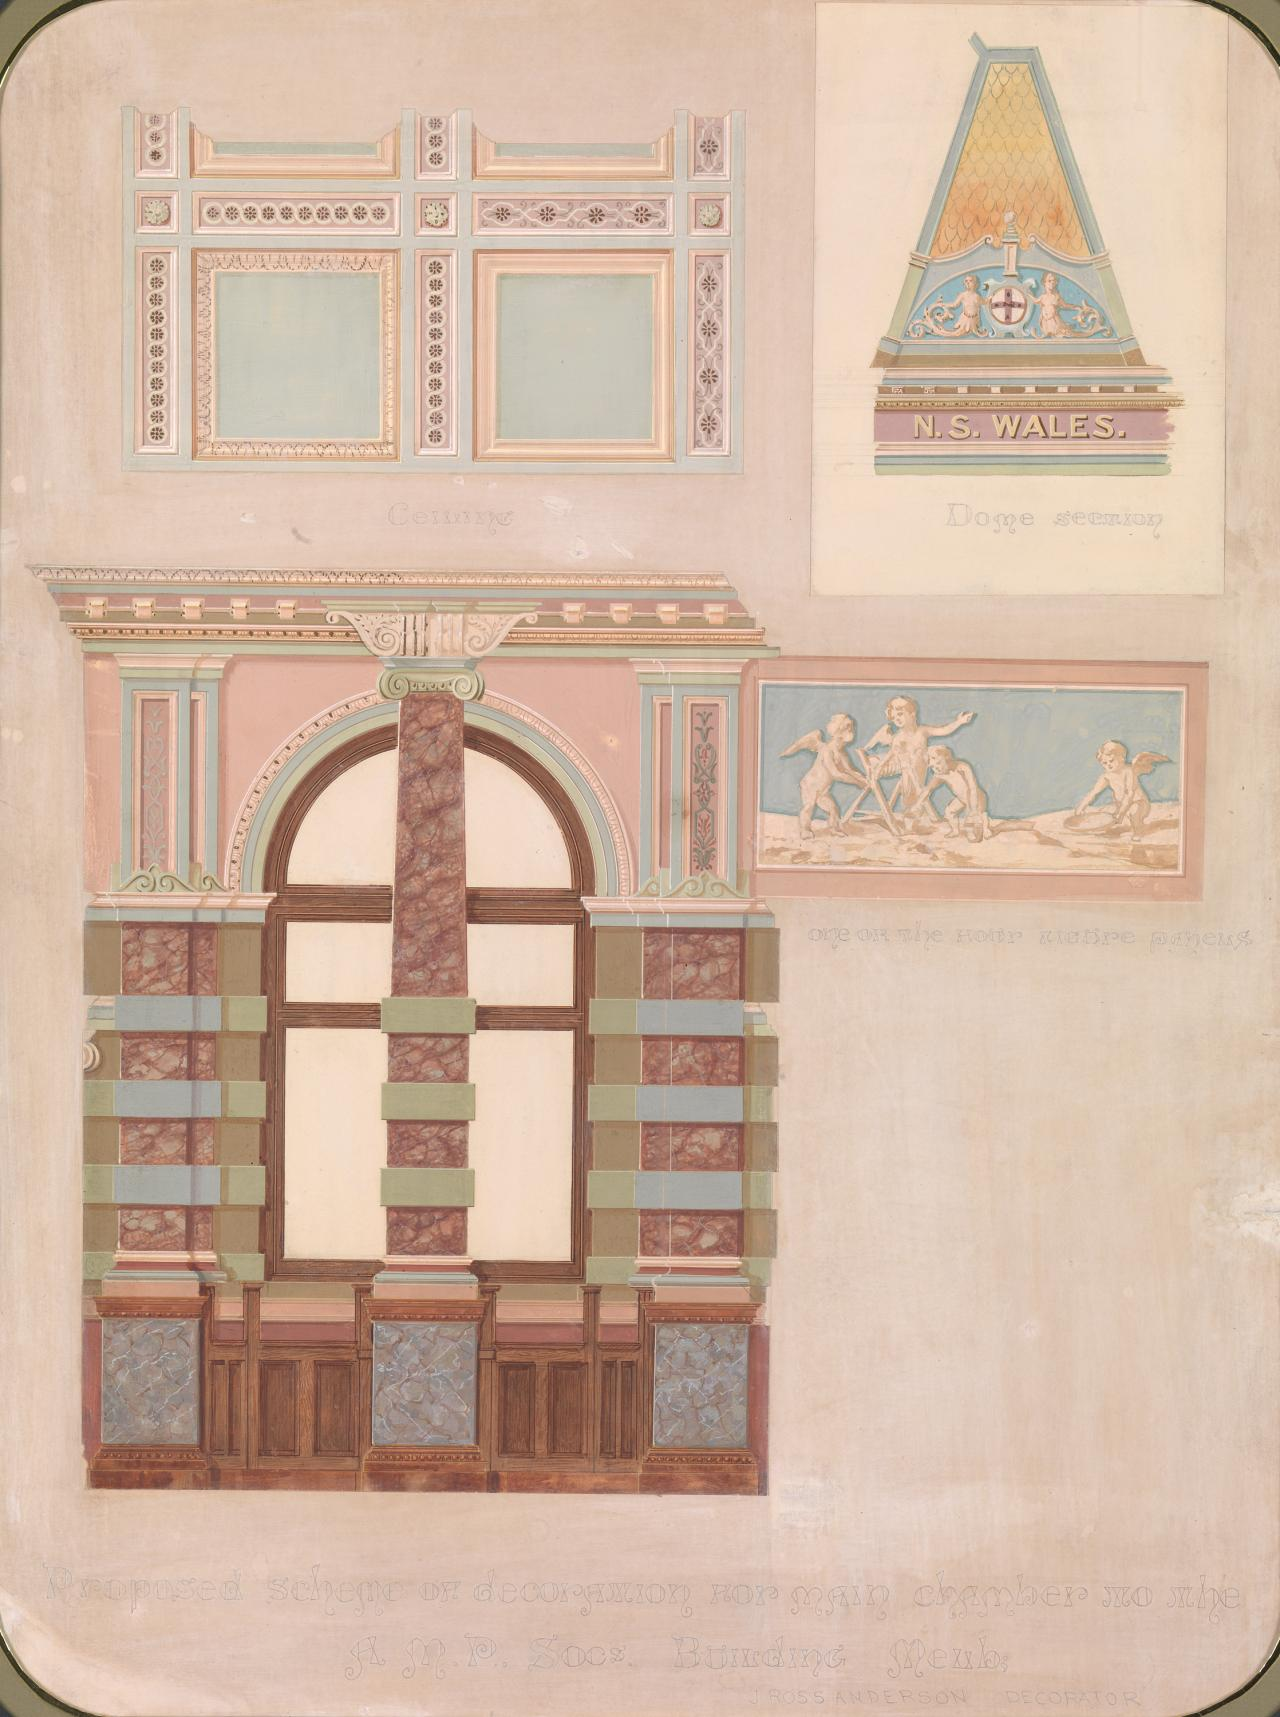 Proposed scheme of decoration for main chamber to the A.M.P. Society's building, Melbourne